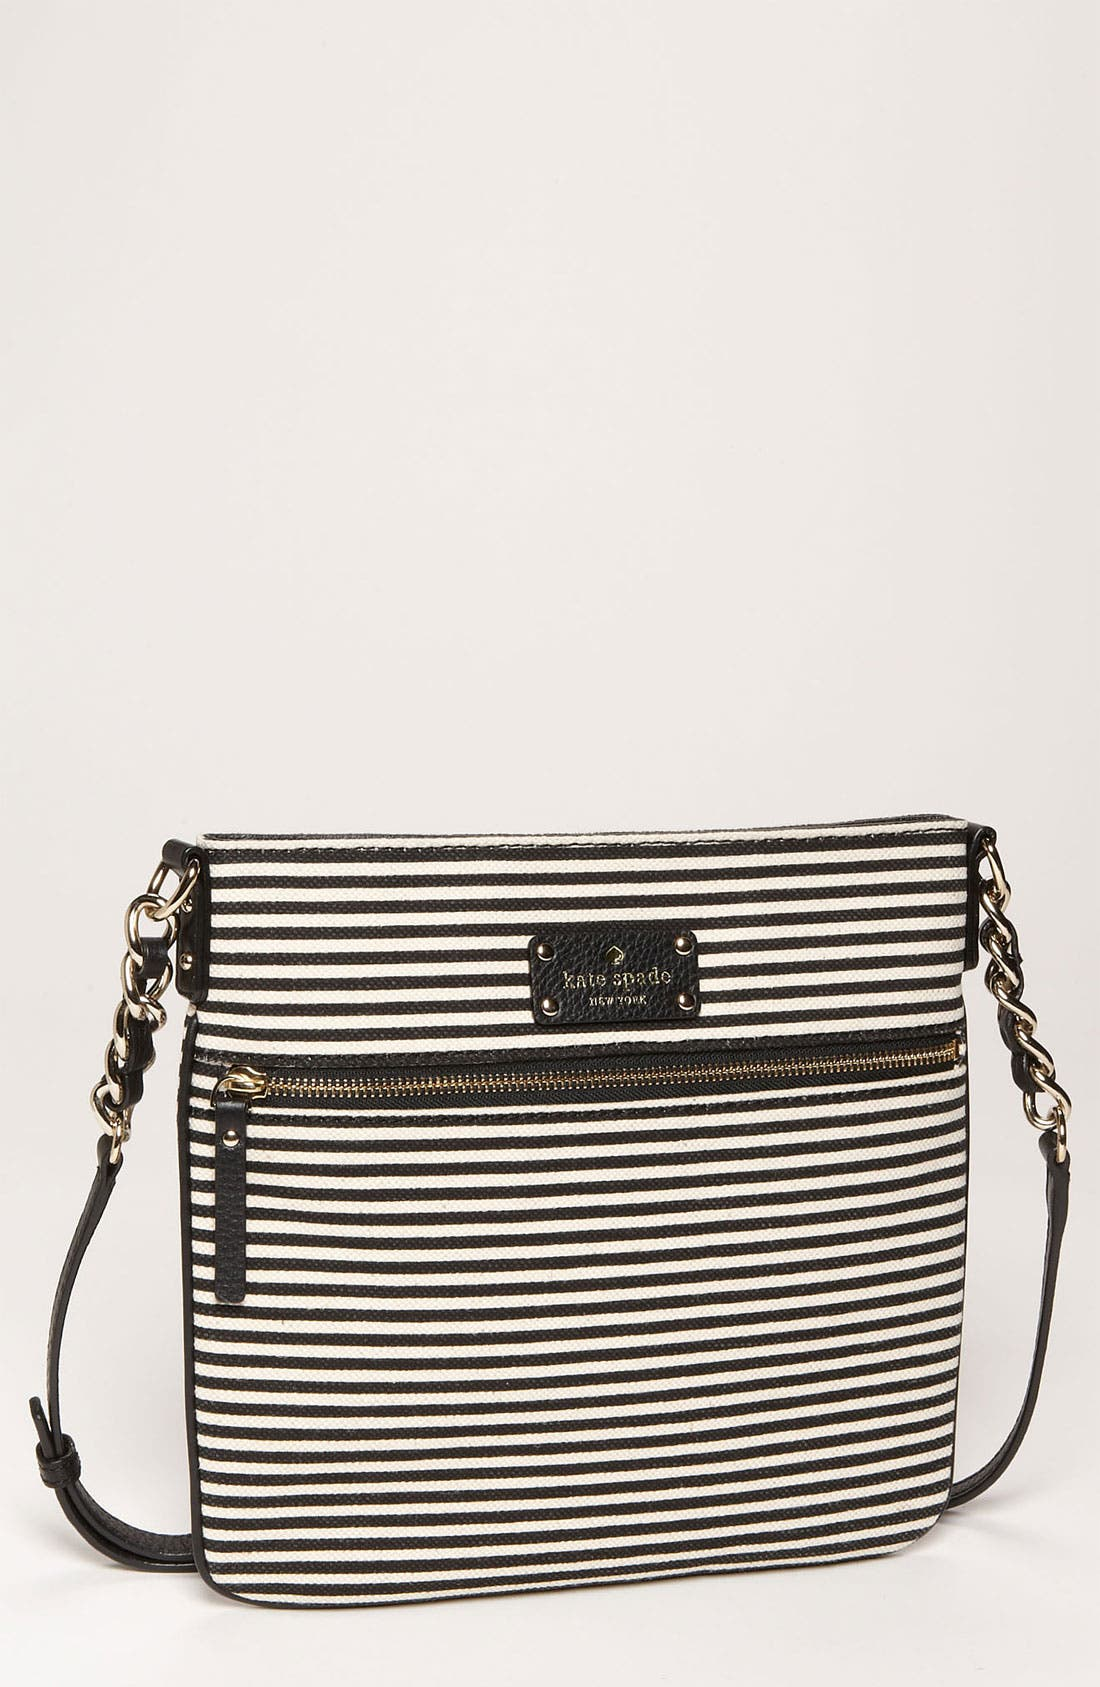 Main Image - kate spade new york 'ellen' crossbody bag